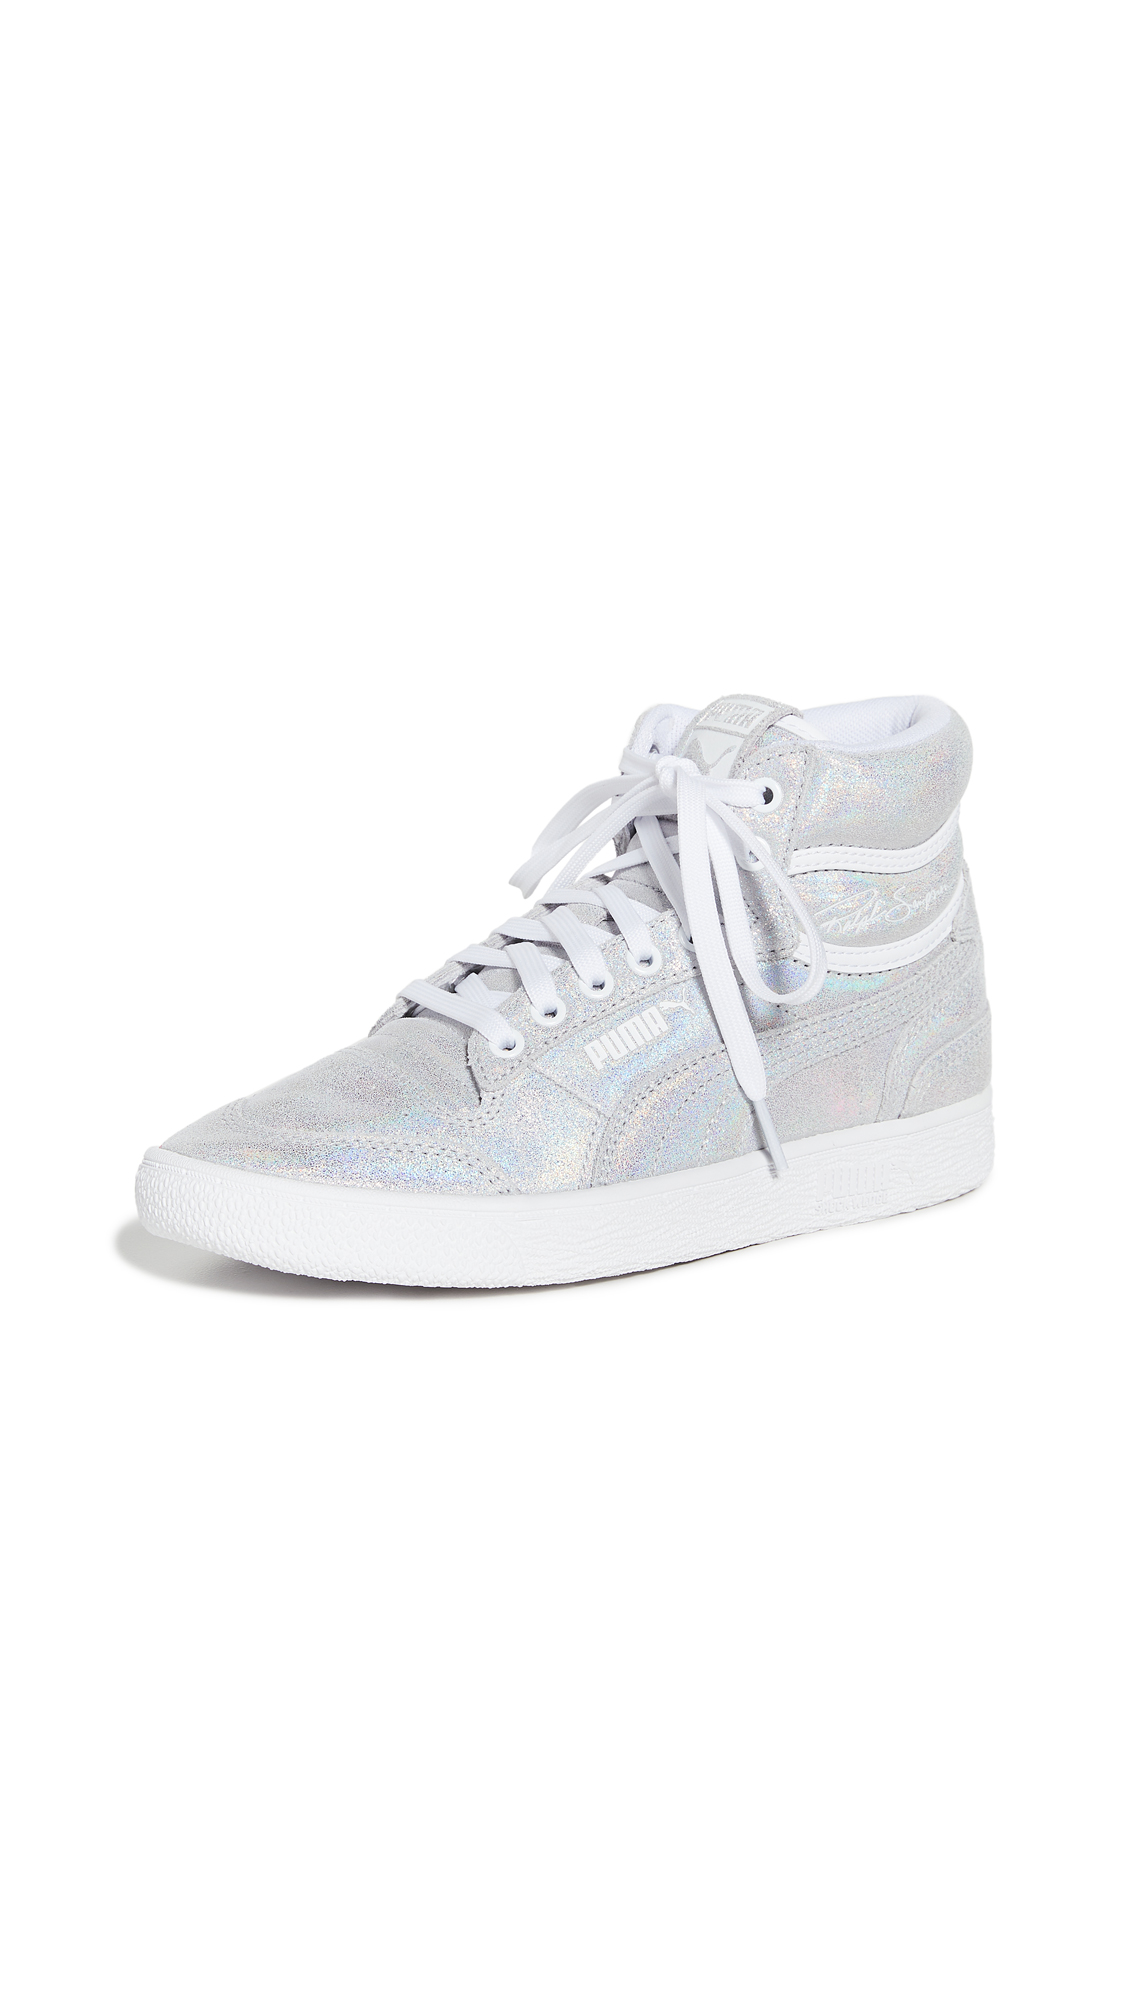 PUMA Ralph Sampson Mid Winter Glimmer Sneakers – 60% Off Sale